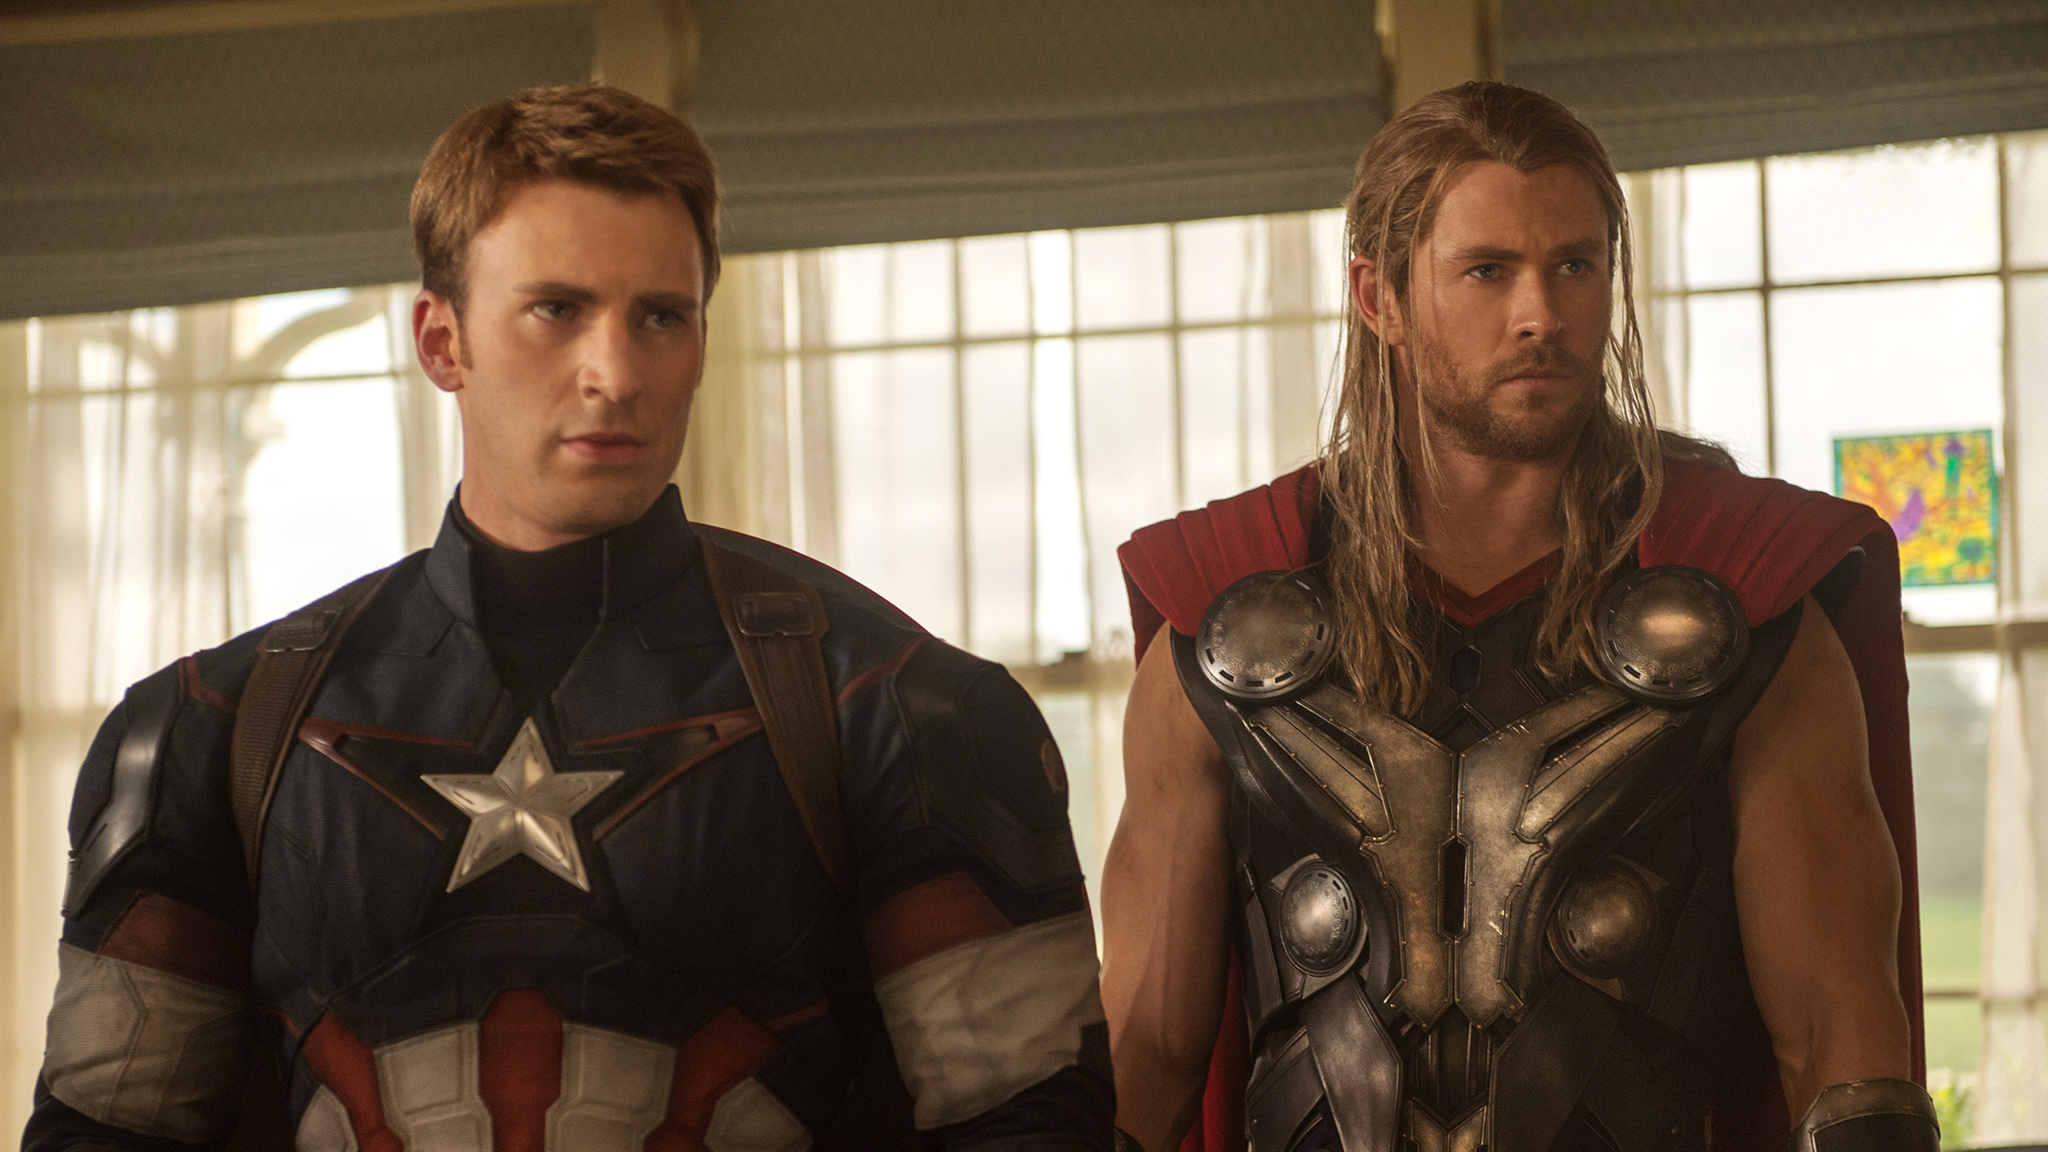 Captain America and Thor in 'Avengers: Age of Ultron'